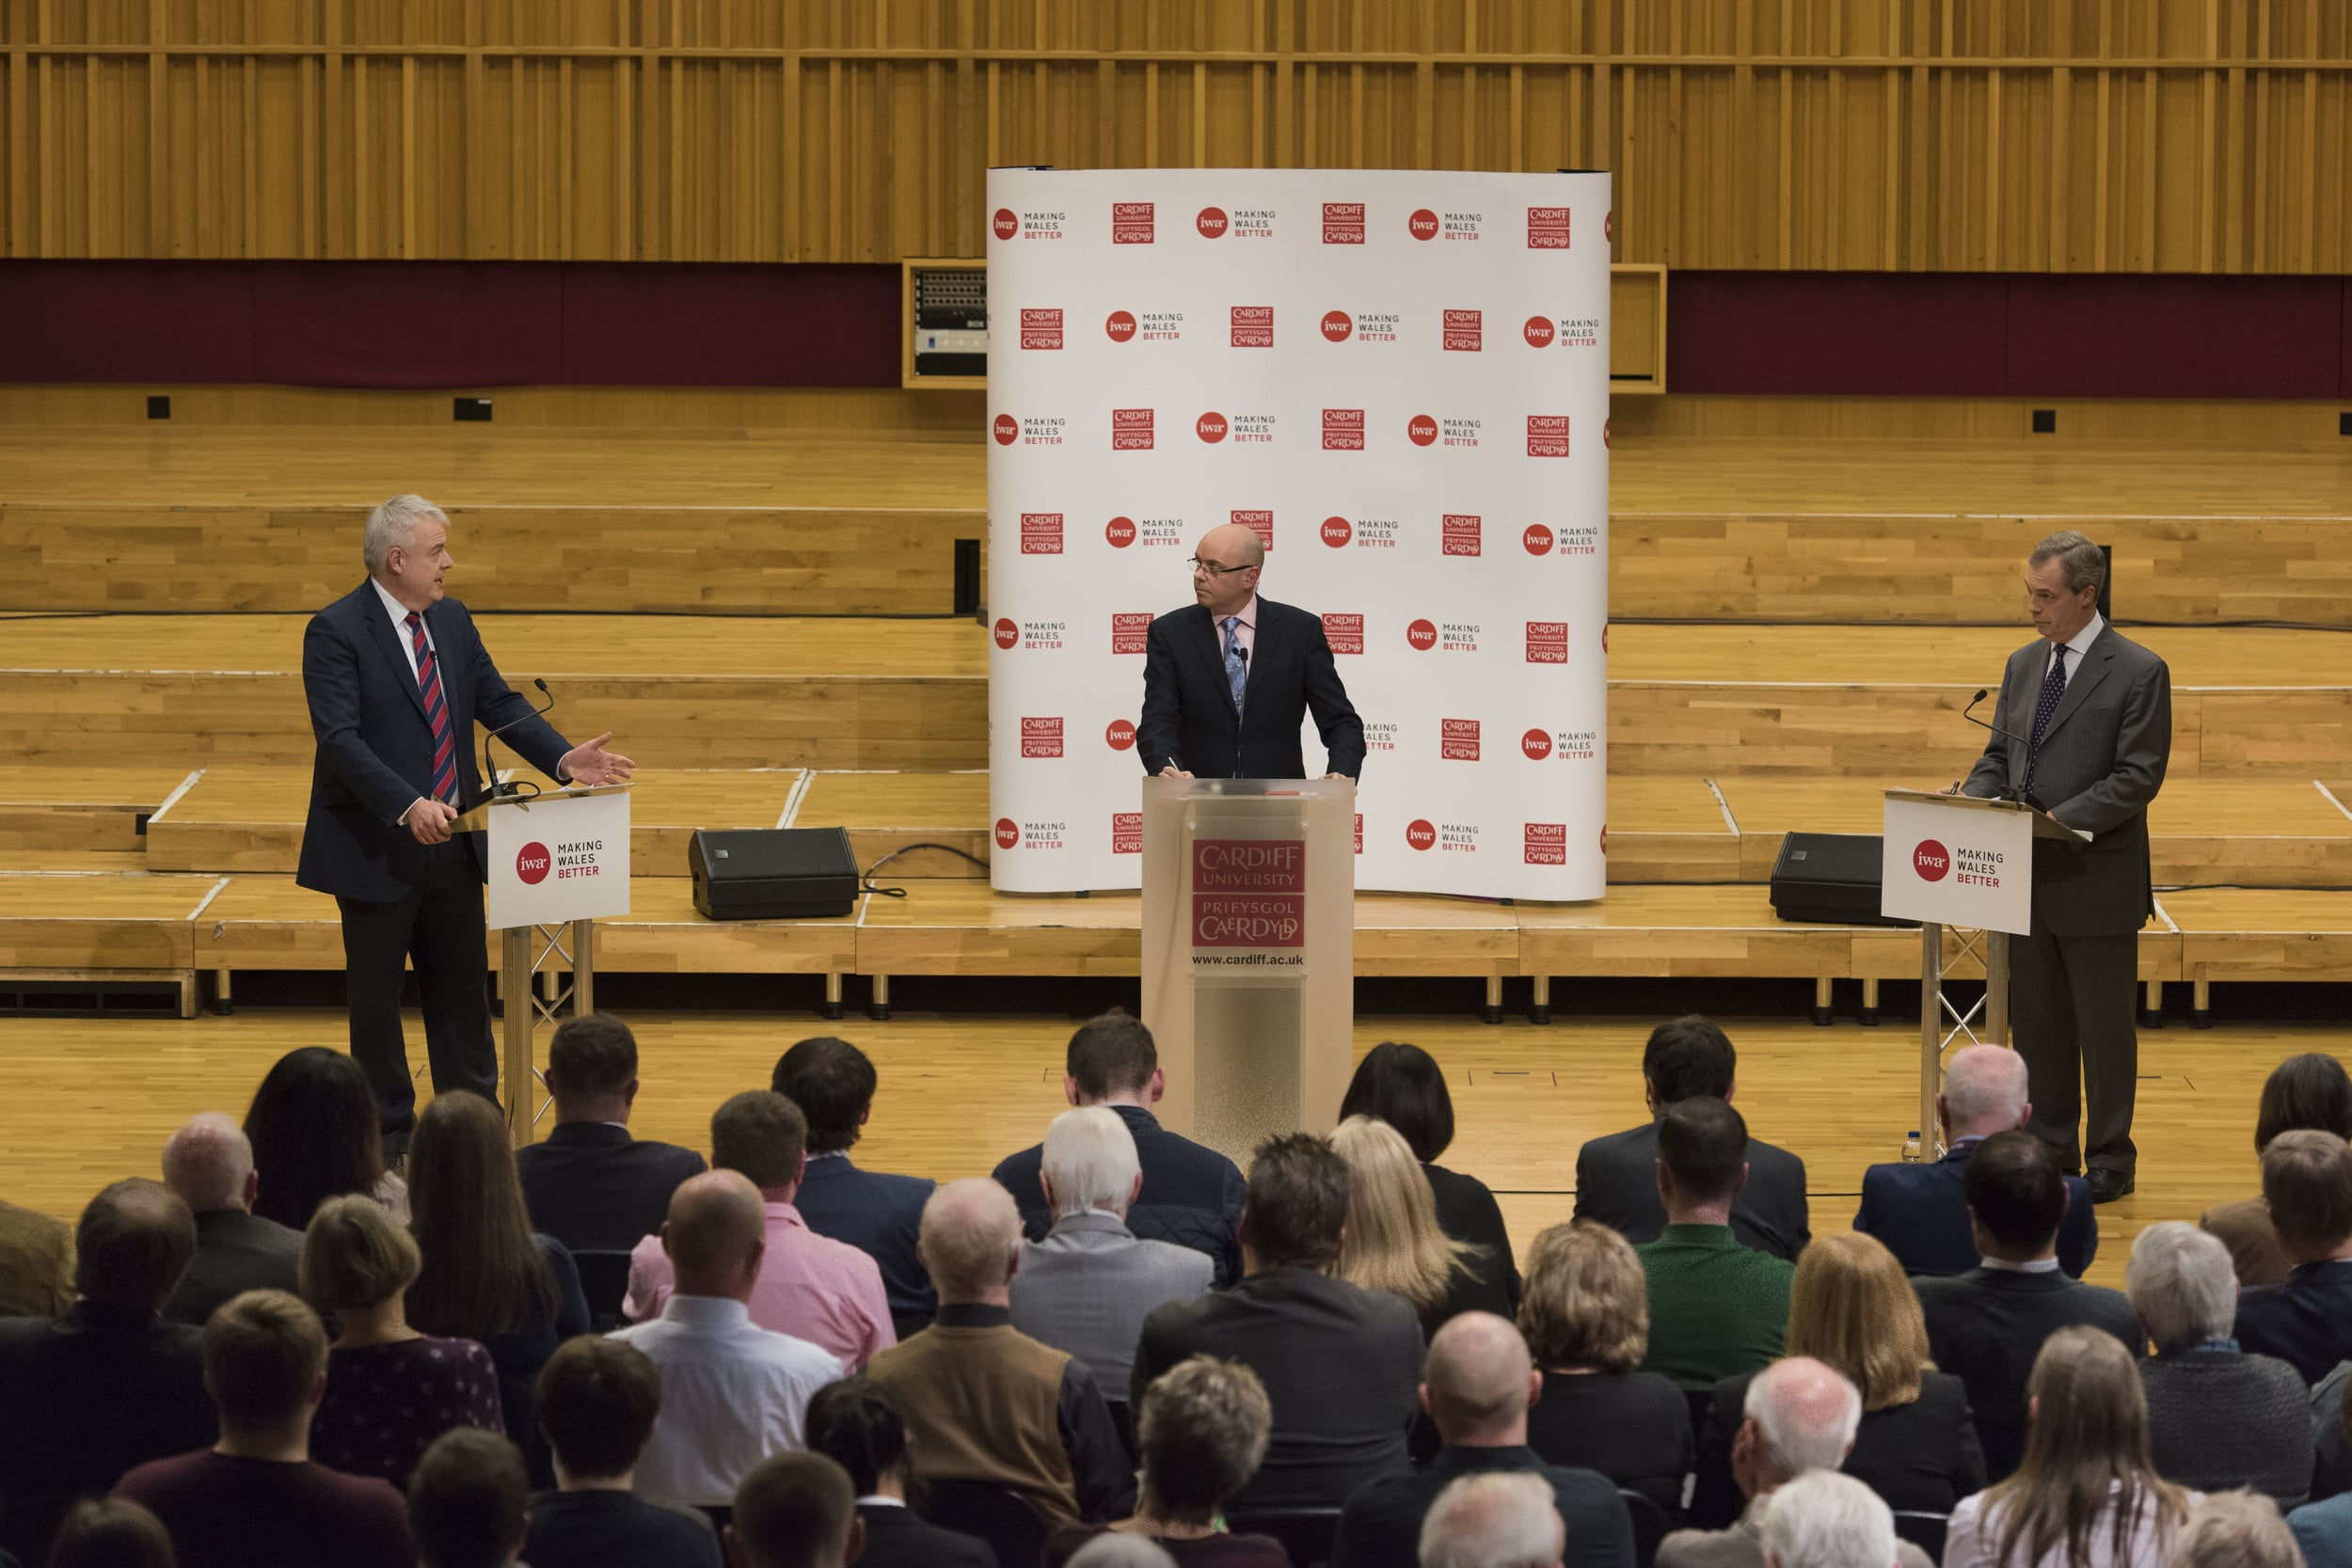 CARDIFF, WALES - JANUARY 11: Nigel Farage, leader of the UK Independence Party and First Minister of Wales Carwyn Jones attend a IWA (Institute of Welsh Affairs) debate called Europe: In or Out? at the Wales Millennium Centre in Cardiff, South Wales. A referendum on whether the UK should remain within the EU or leave is set to be held before the end of 2017.(Photo by Matthew Horwood/Getty Images)